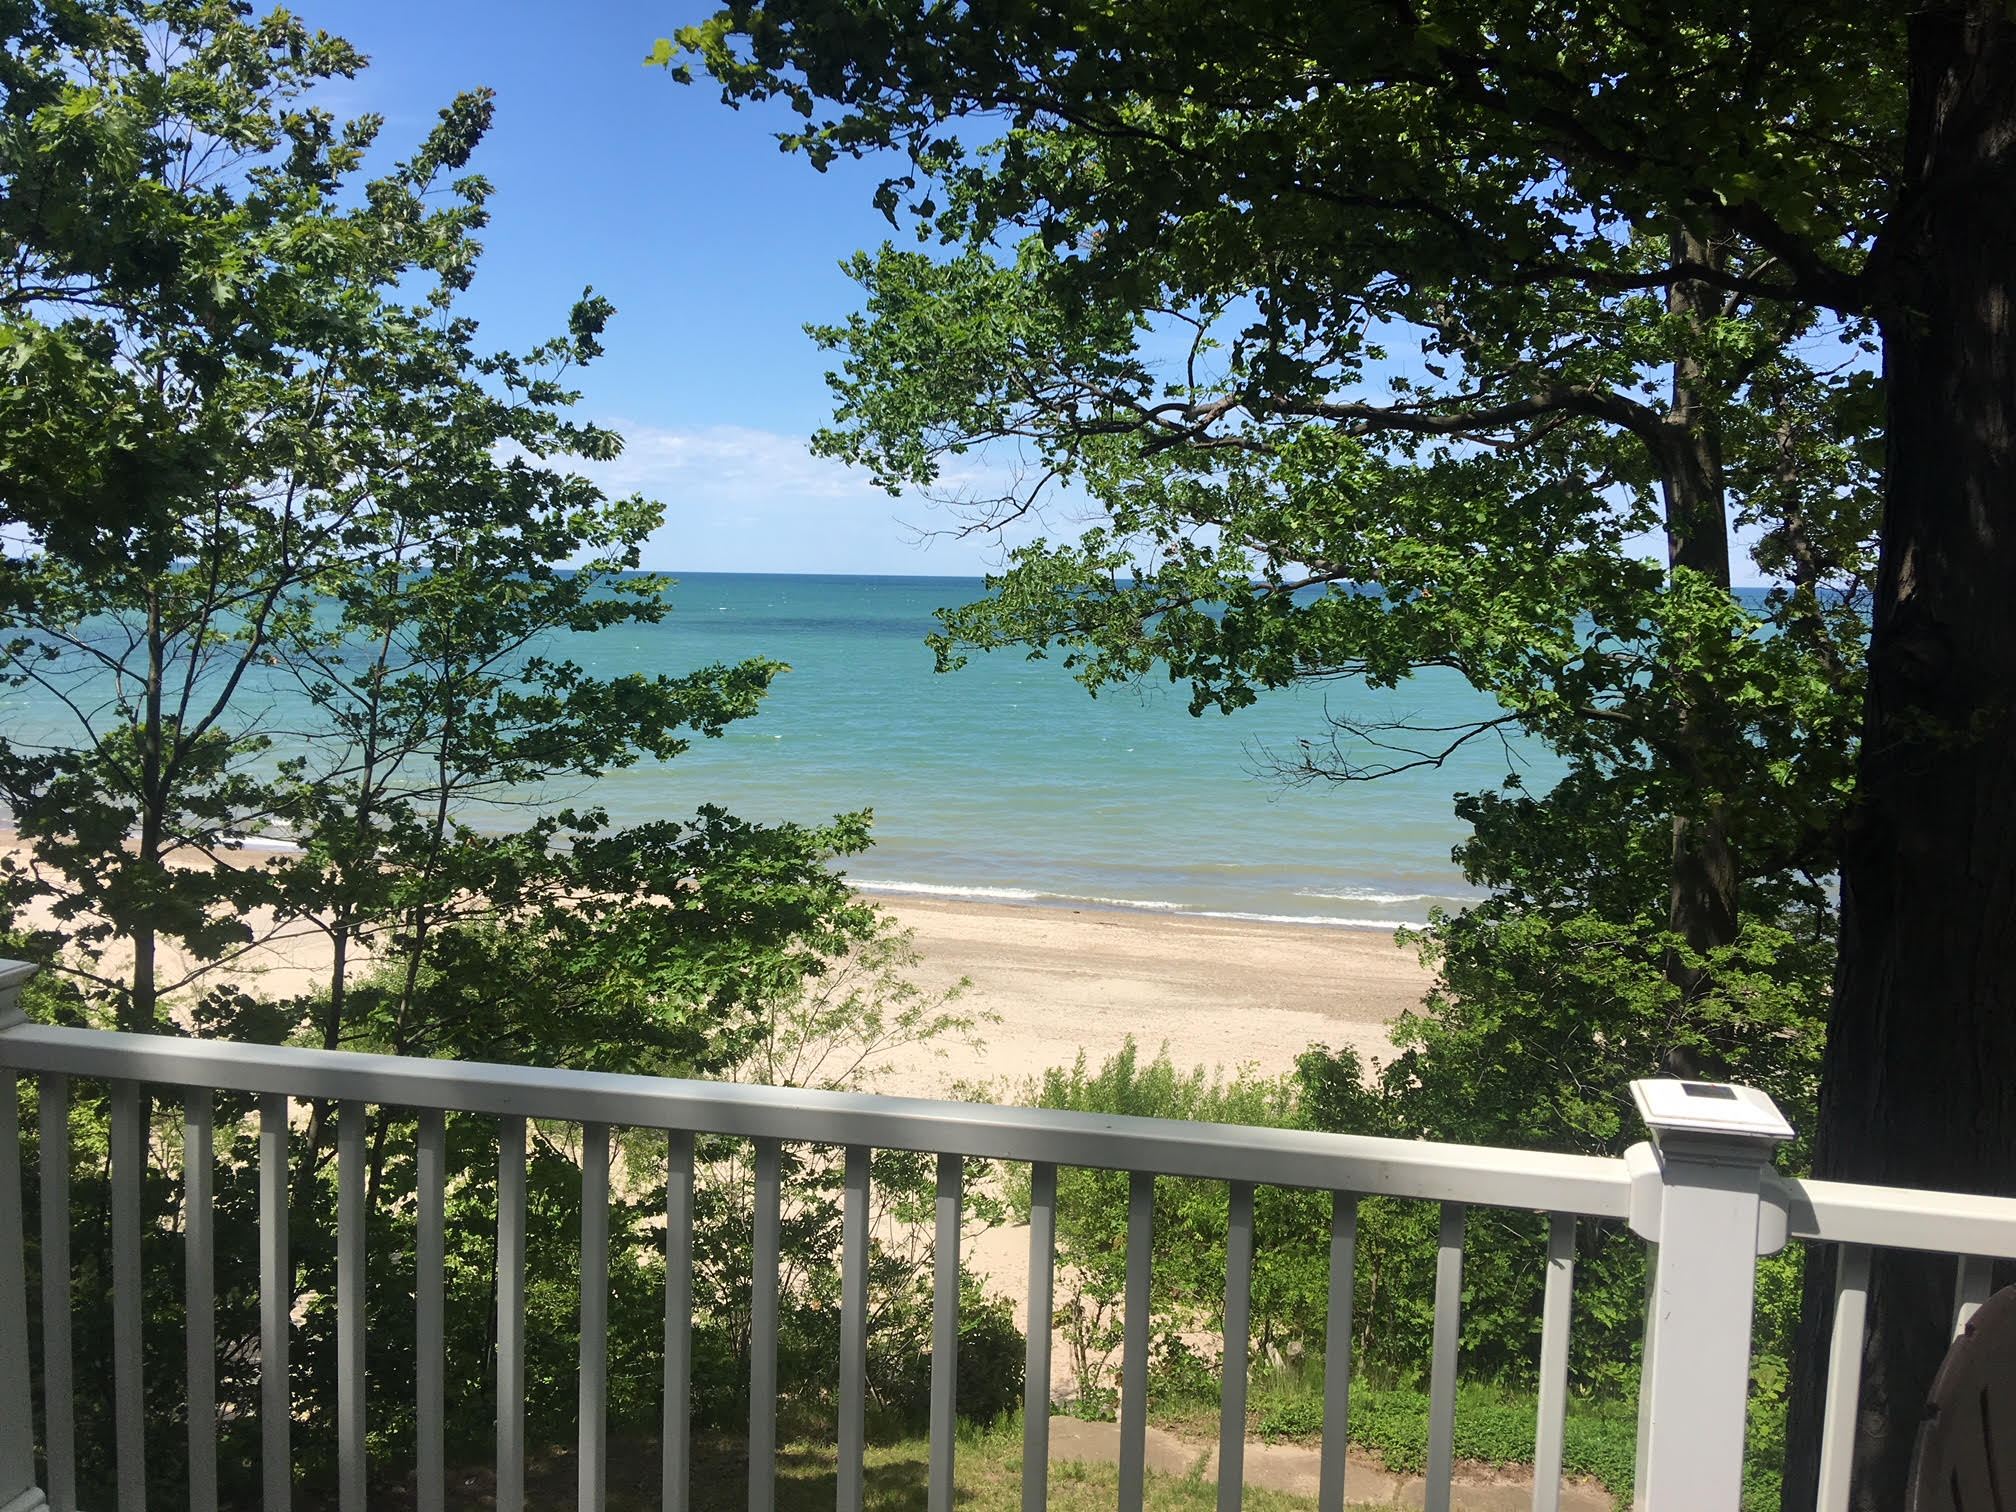 Vacation Rental Property Description Angola Lake Erie View Find Rentals